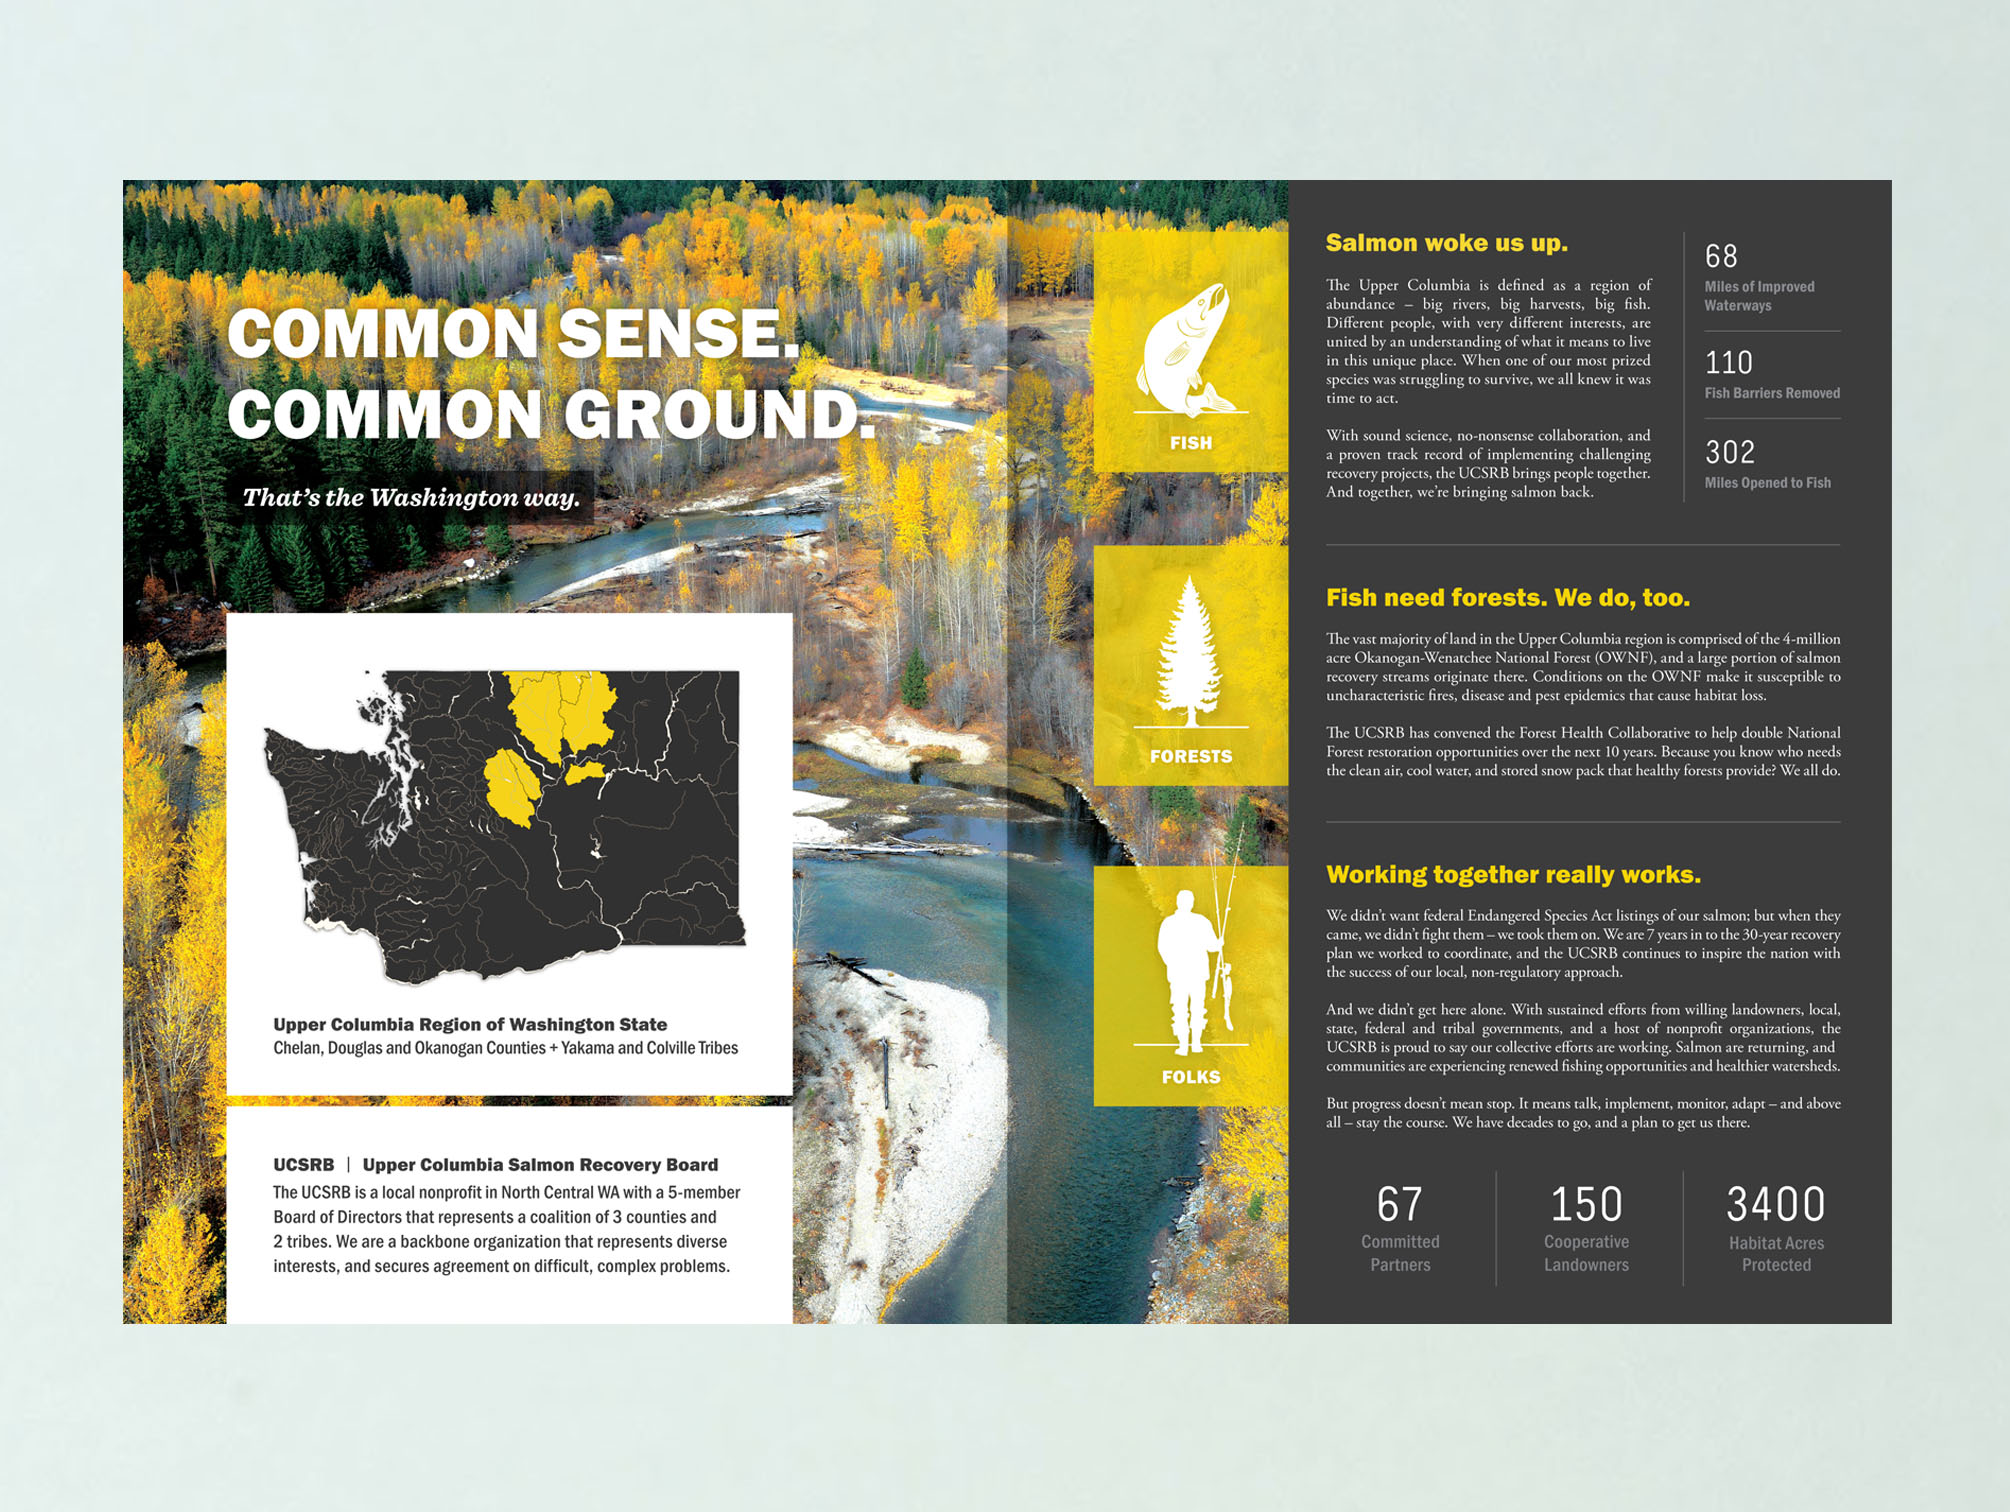 Design and copywriting for Upper Columbia Salmon Recovery Board brochure. Interior spread shown.   Primary content in dark gray band follows:  —   Salmon woke us up.   The Upper Columbia is defined as a region of abundance – big rivers, big harvests, big fish. Different people, with very different interests, are united by an understanding of what it means to live in this unique place. When one of our most prized species was struggling to survive, we all knew it was time to act.  With sound science, no-nonsense collaboration, and a proven track record of implementing challenging recovery projects, the UCSRB brings people together. And together, we're bringing salmon back.  —   Fish need forests. People do, too.   The vast majority of land in the Upper Columbia region is comprised of the 4-million acre Okanogan-Wenatchee National Forest (OWNF), and a large portion of salmon recovery streams originate there. Conditions on the OWNF make it susceptible to uncharacteristic fires, disease and pest epidemics that cause habitat loss.  The UCSRB has convened the Forest Health Collaborative to help double National Forest restoration opportunities over the next 10 years. Because you know who needs the clean air, cool water, and stored snow pack that healthy forests provide? We all do.  —   Working together really works.   We didn't want federal Endangered Species Act listings of our salmon; but when they came, we didn't fight them – we took them on. We are 7 years in to the 30-year recovery plan we worked to coordinate, and the UCSRB continues to inspire the nation with the success of our local, non-regulatory approach.  And we didn't get here alone. With sustained efforts from willing landowners, local, state, federal and tribal governments, and a host of nonprofit organizations, the UCSRB is proud to say our collective efforts are working. Salmon are returning, and communities are experiencing renewed fishing opportunities and healthier watersheds.  But progress doesn't mean 